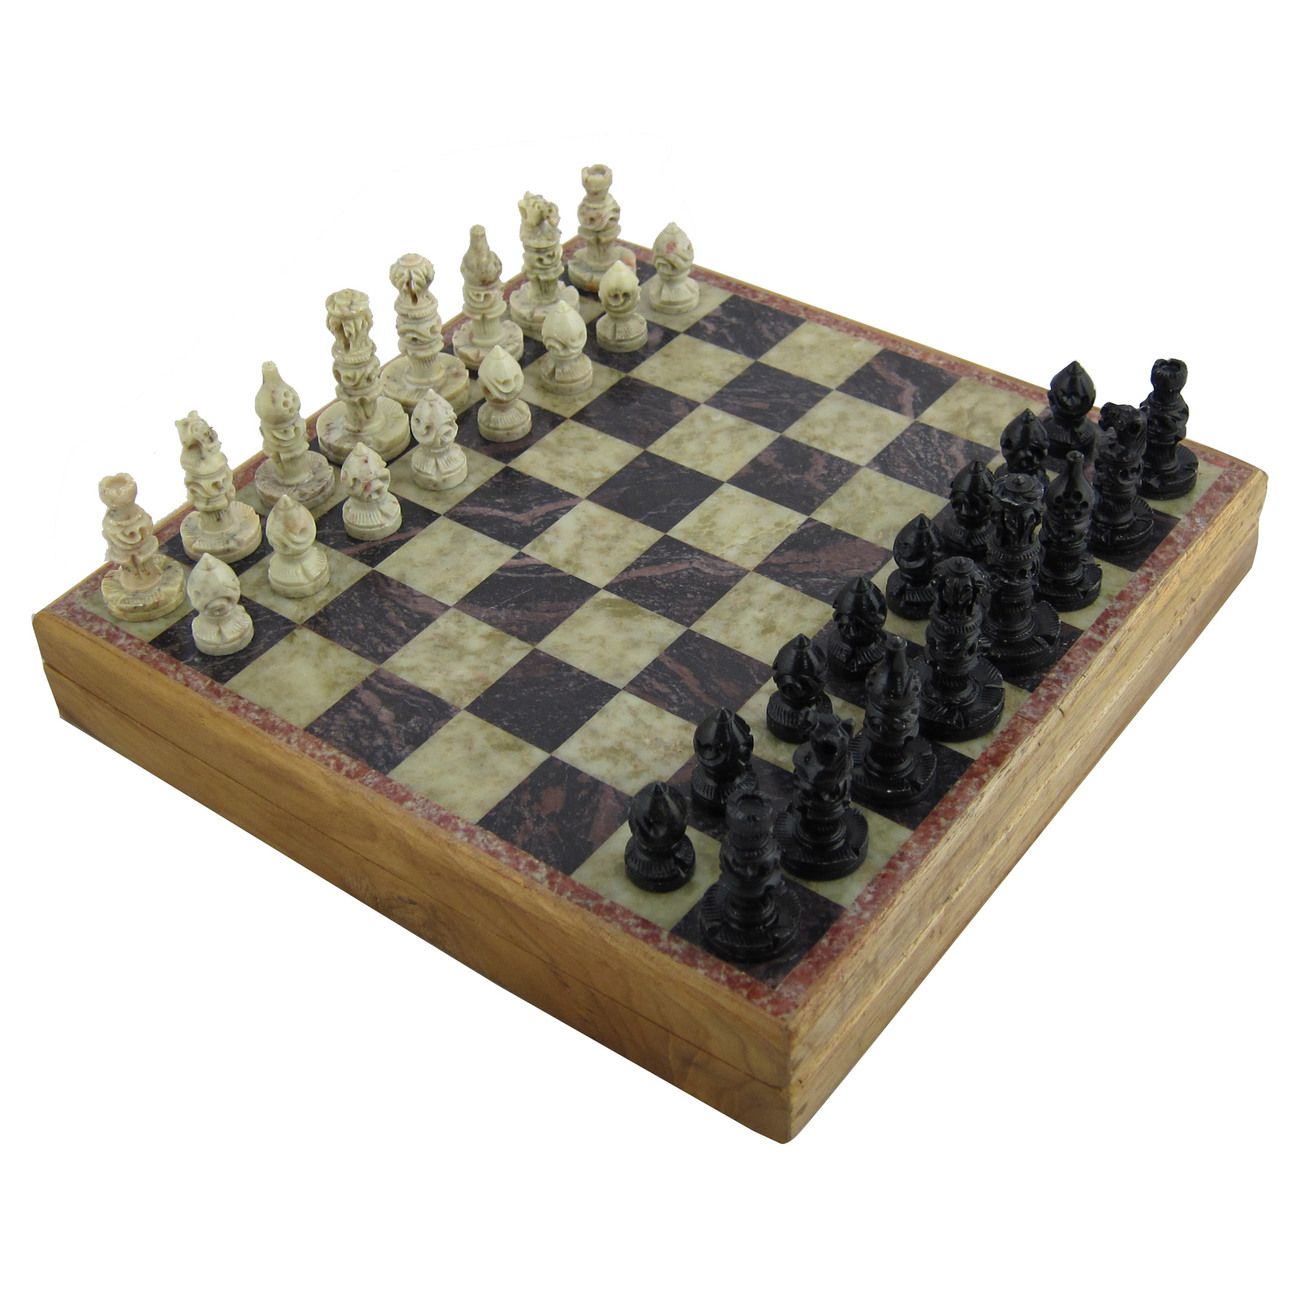 Rajasthan stone art unique chess sets and board chess - Coolest chess boards ...